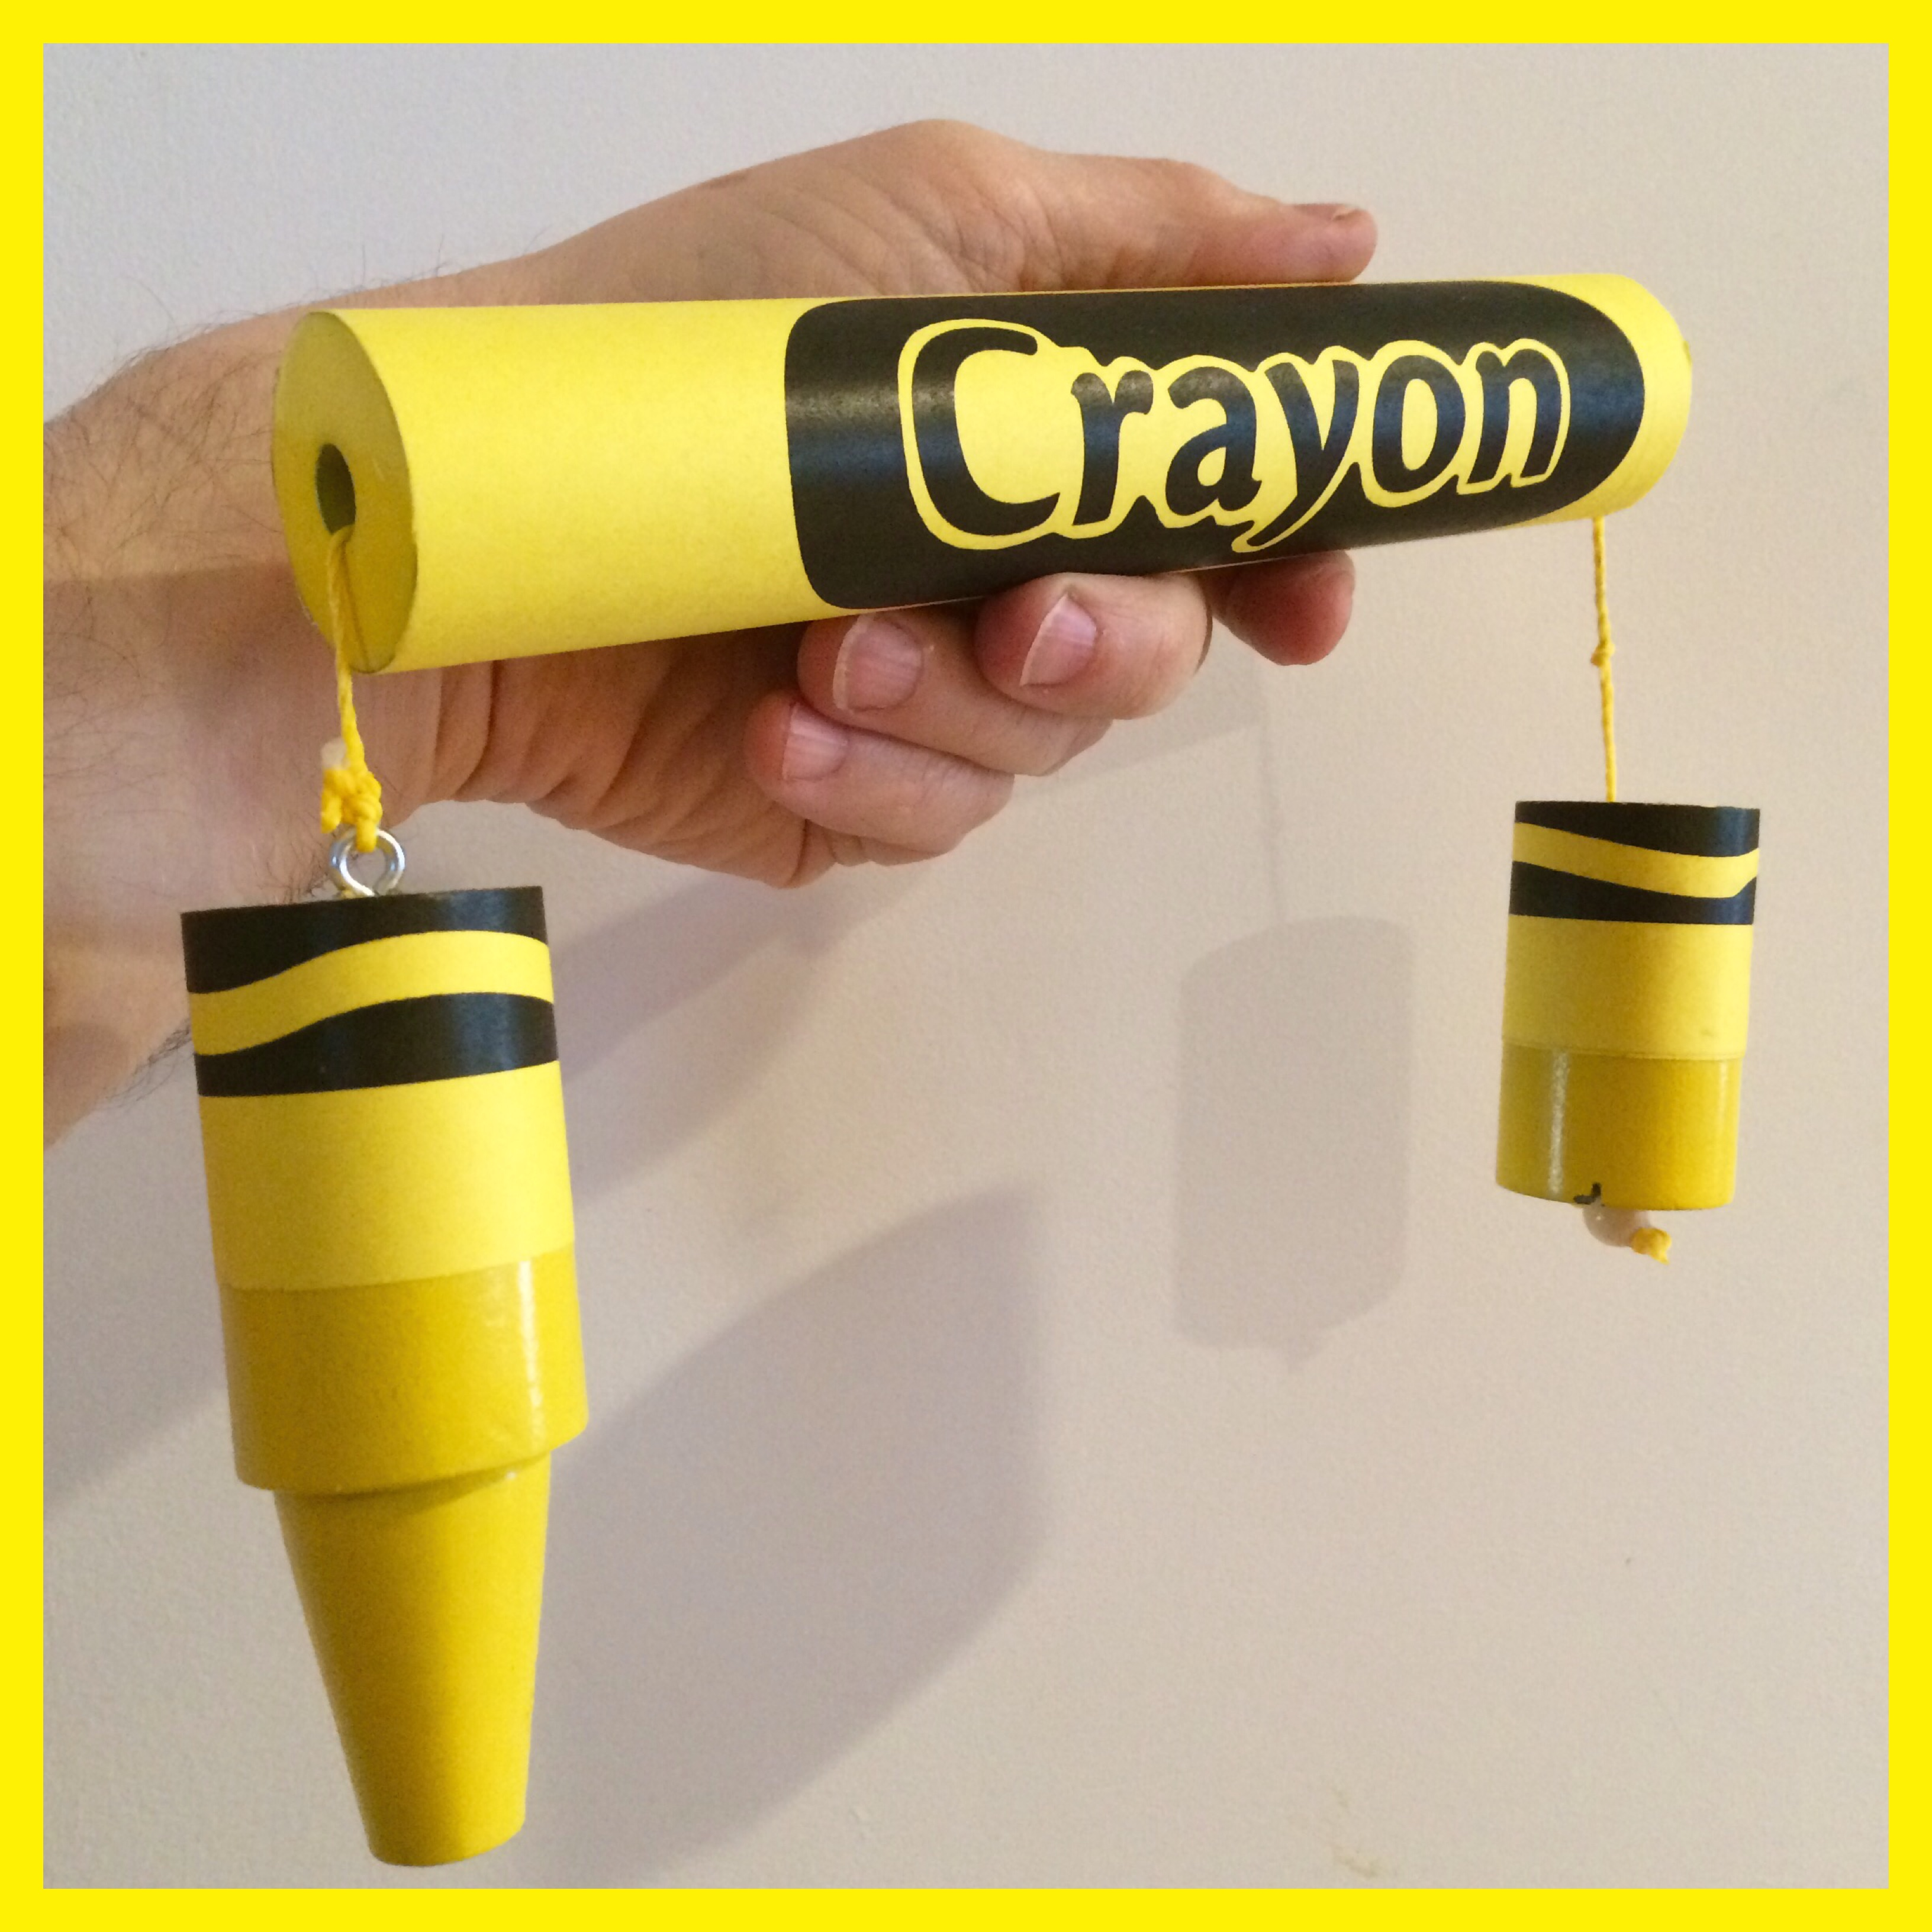 Breakaway Crayon - Yellow - magic